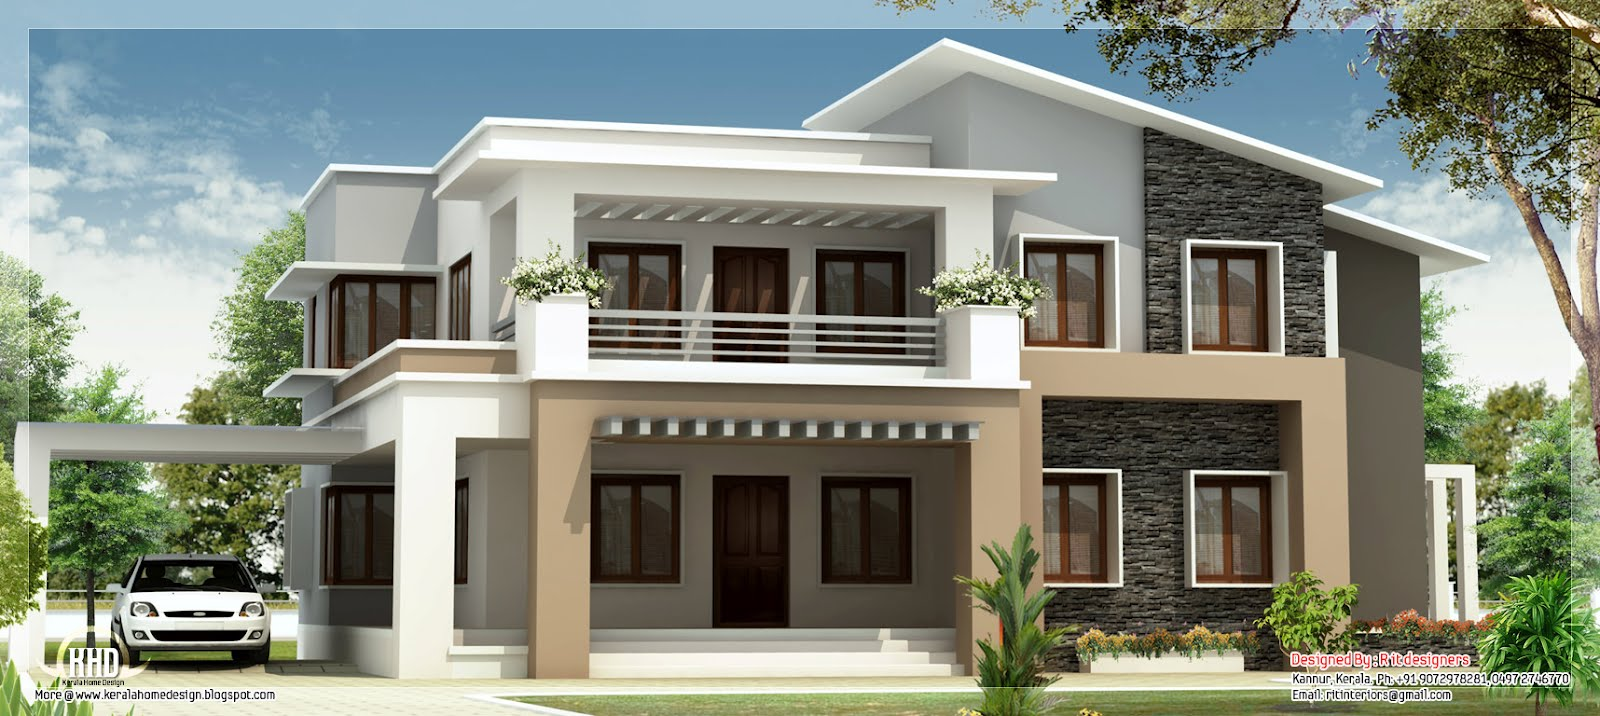 Great Double Floor House Design 1600 x 716 · 210 kB · jpeg